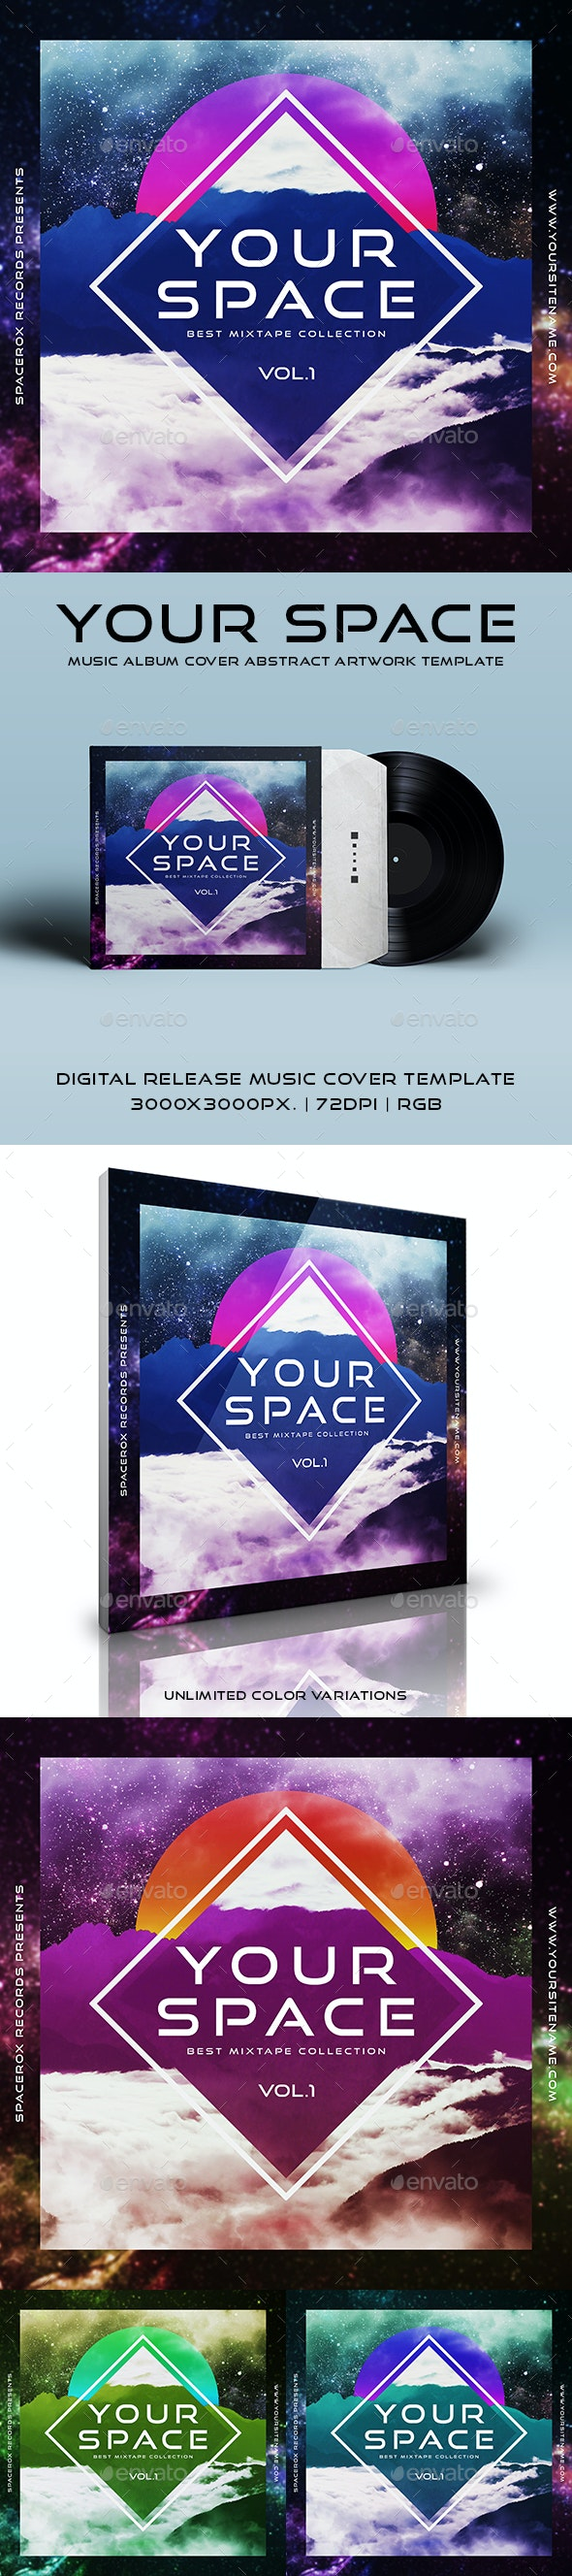 Your Space - Music Album Cover Abstract Artwork Template - Miscellaneous Social Media